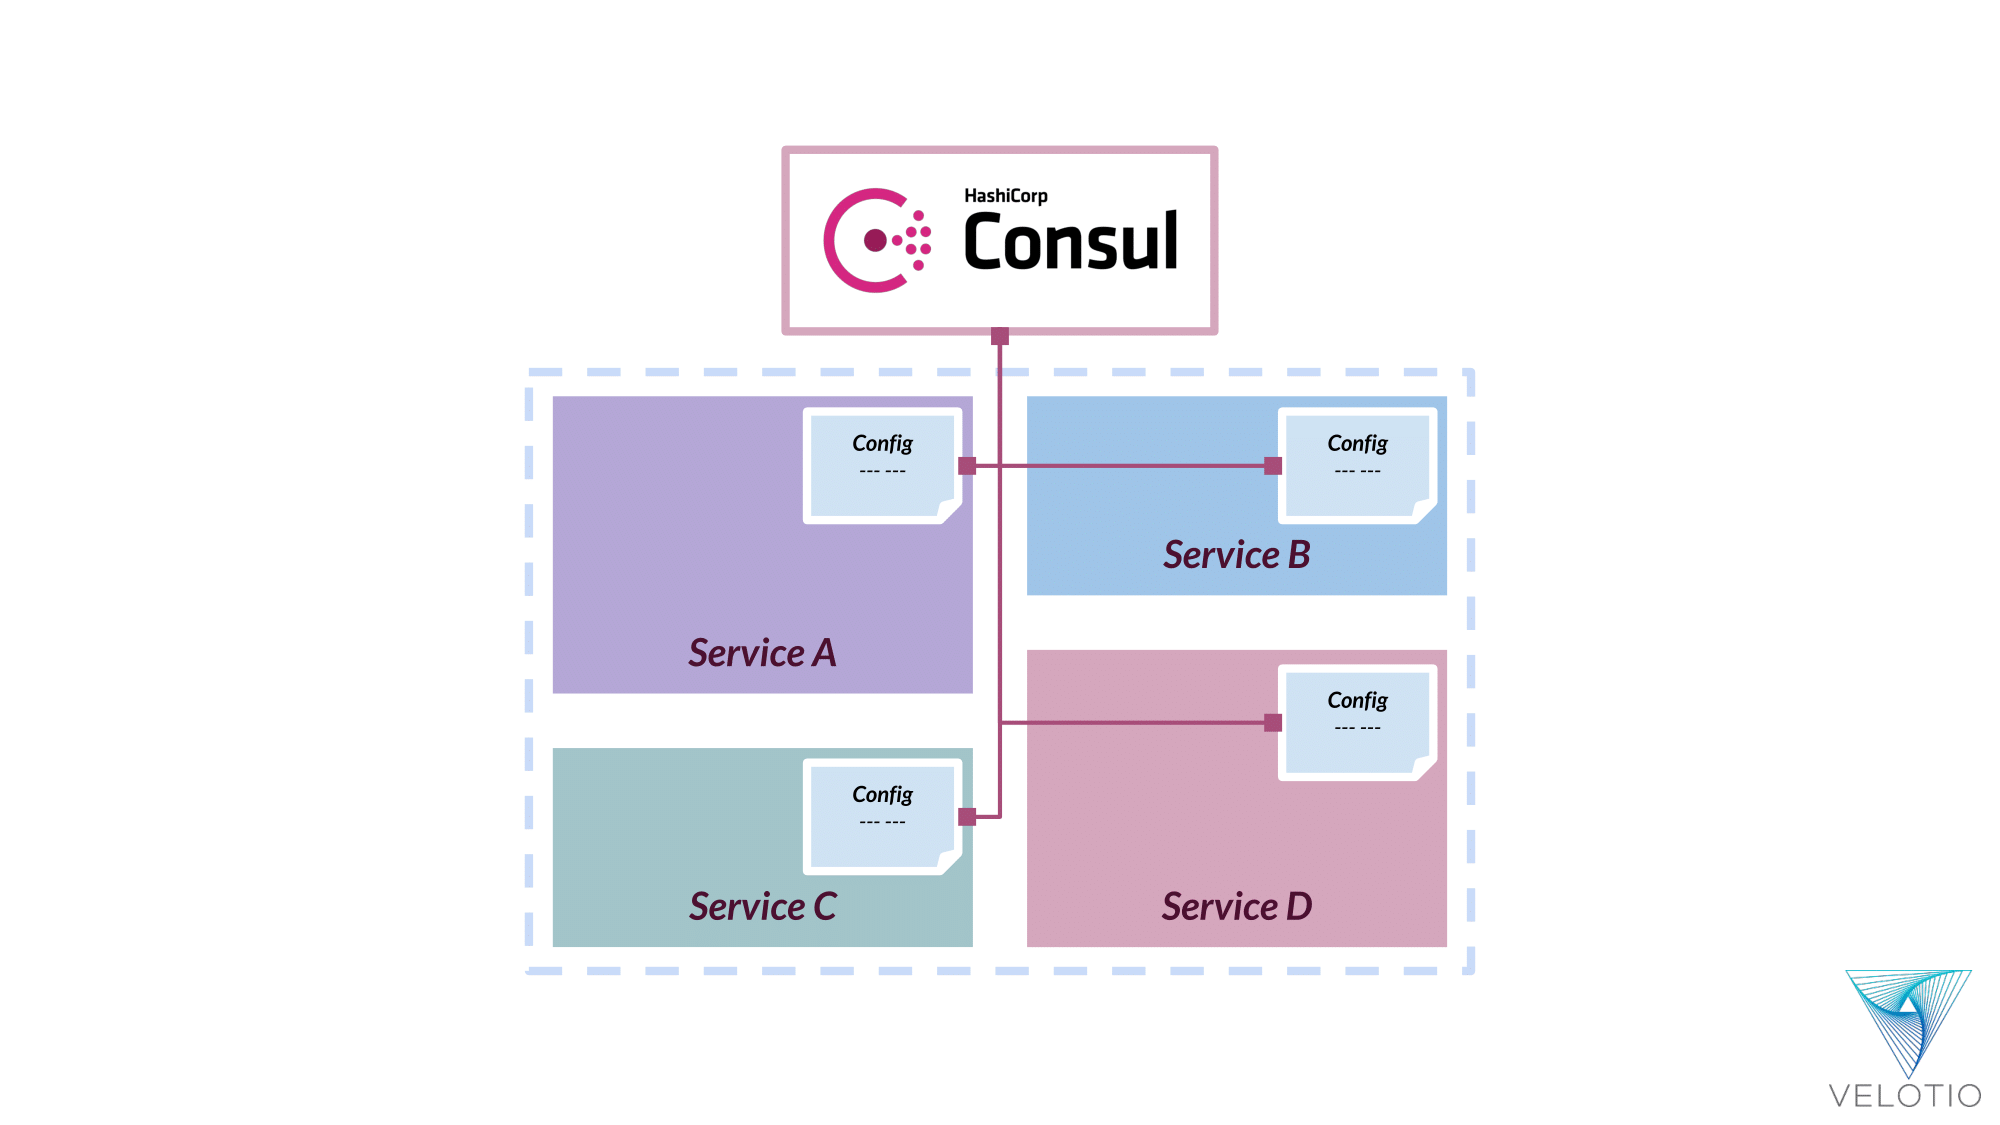 Consul's KV store allows seamless configuration mapping on each service